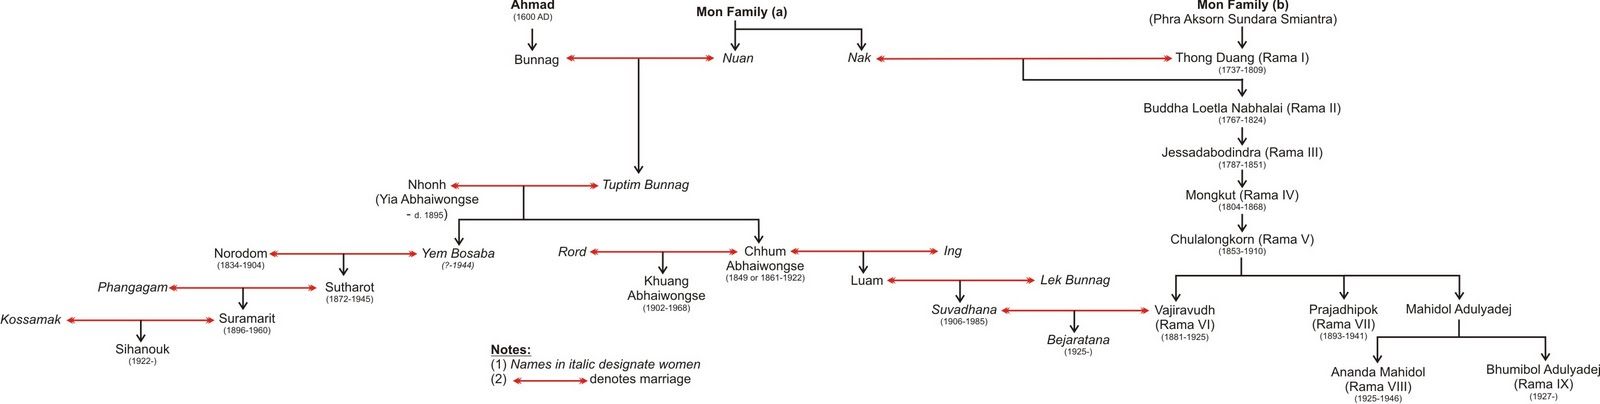 blank family tree form. Familya family tree charts,